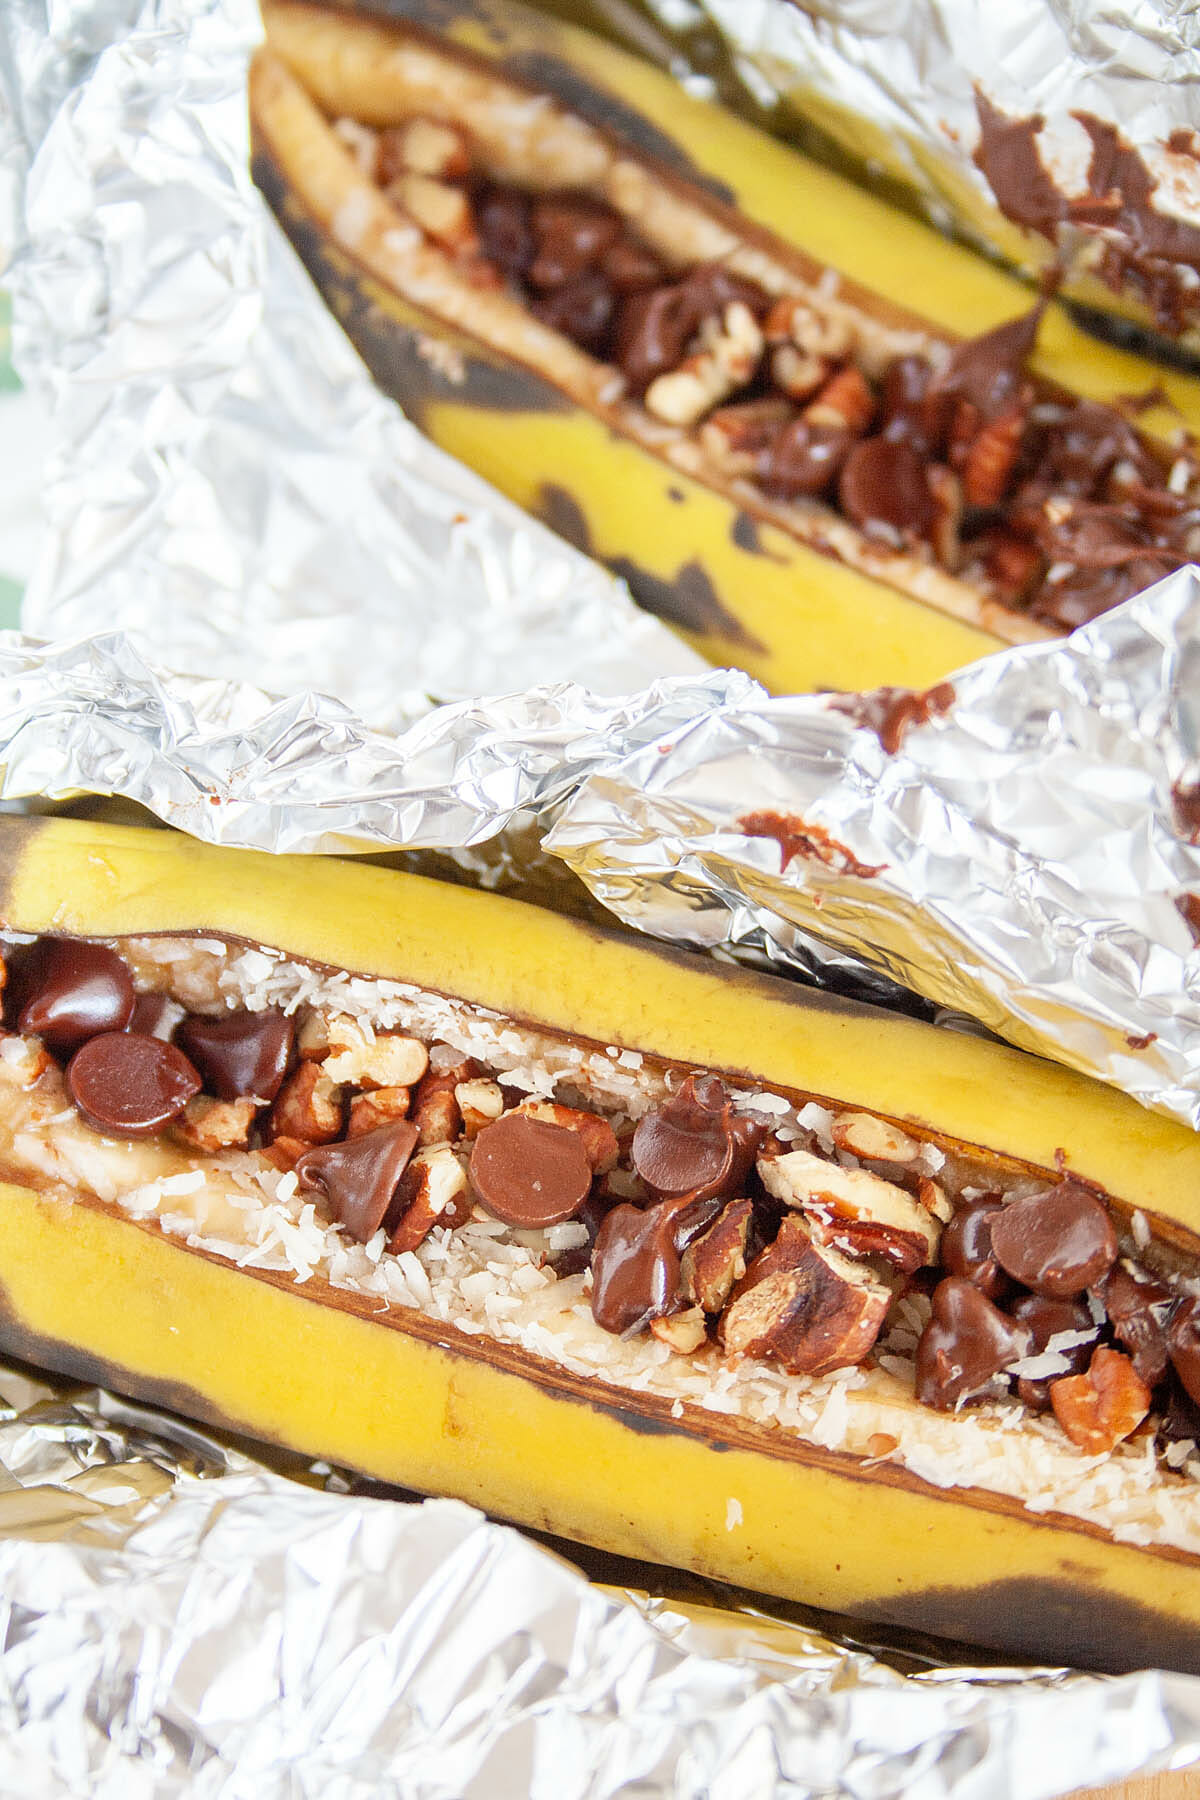 Two Campfire Stuffed Bananas in tinfoil close up.